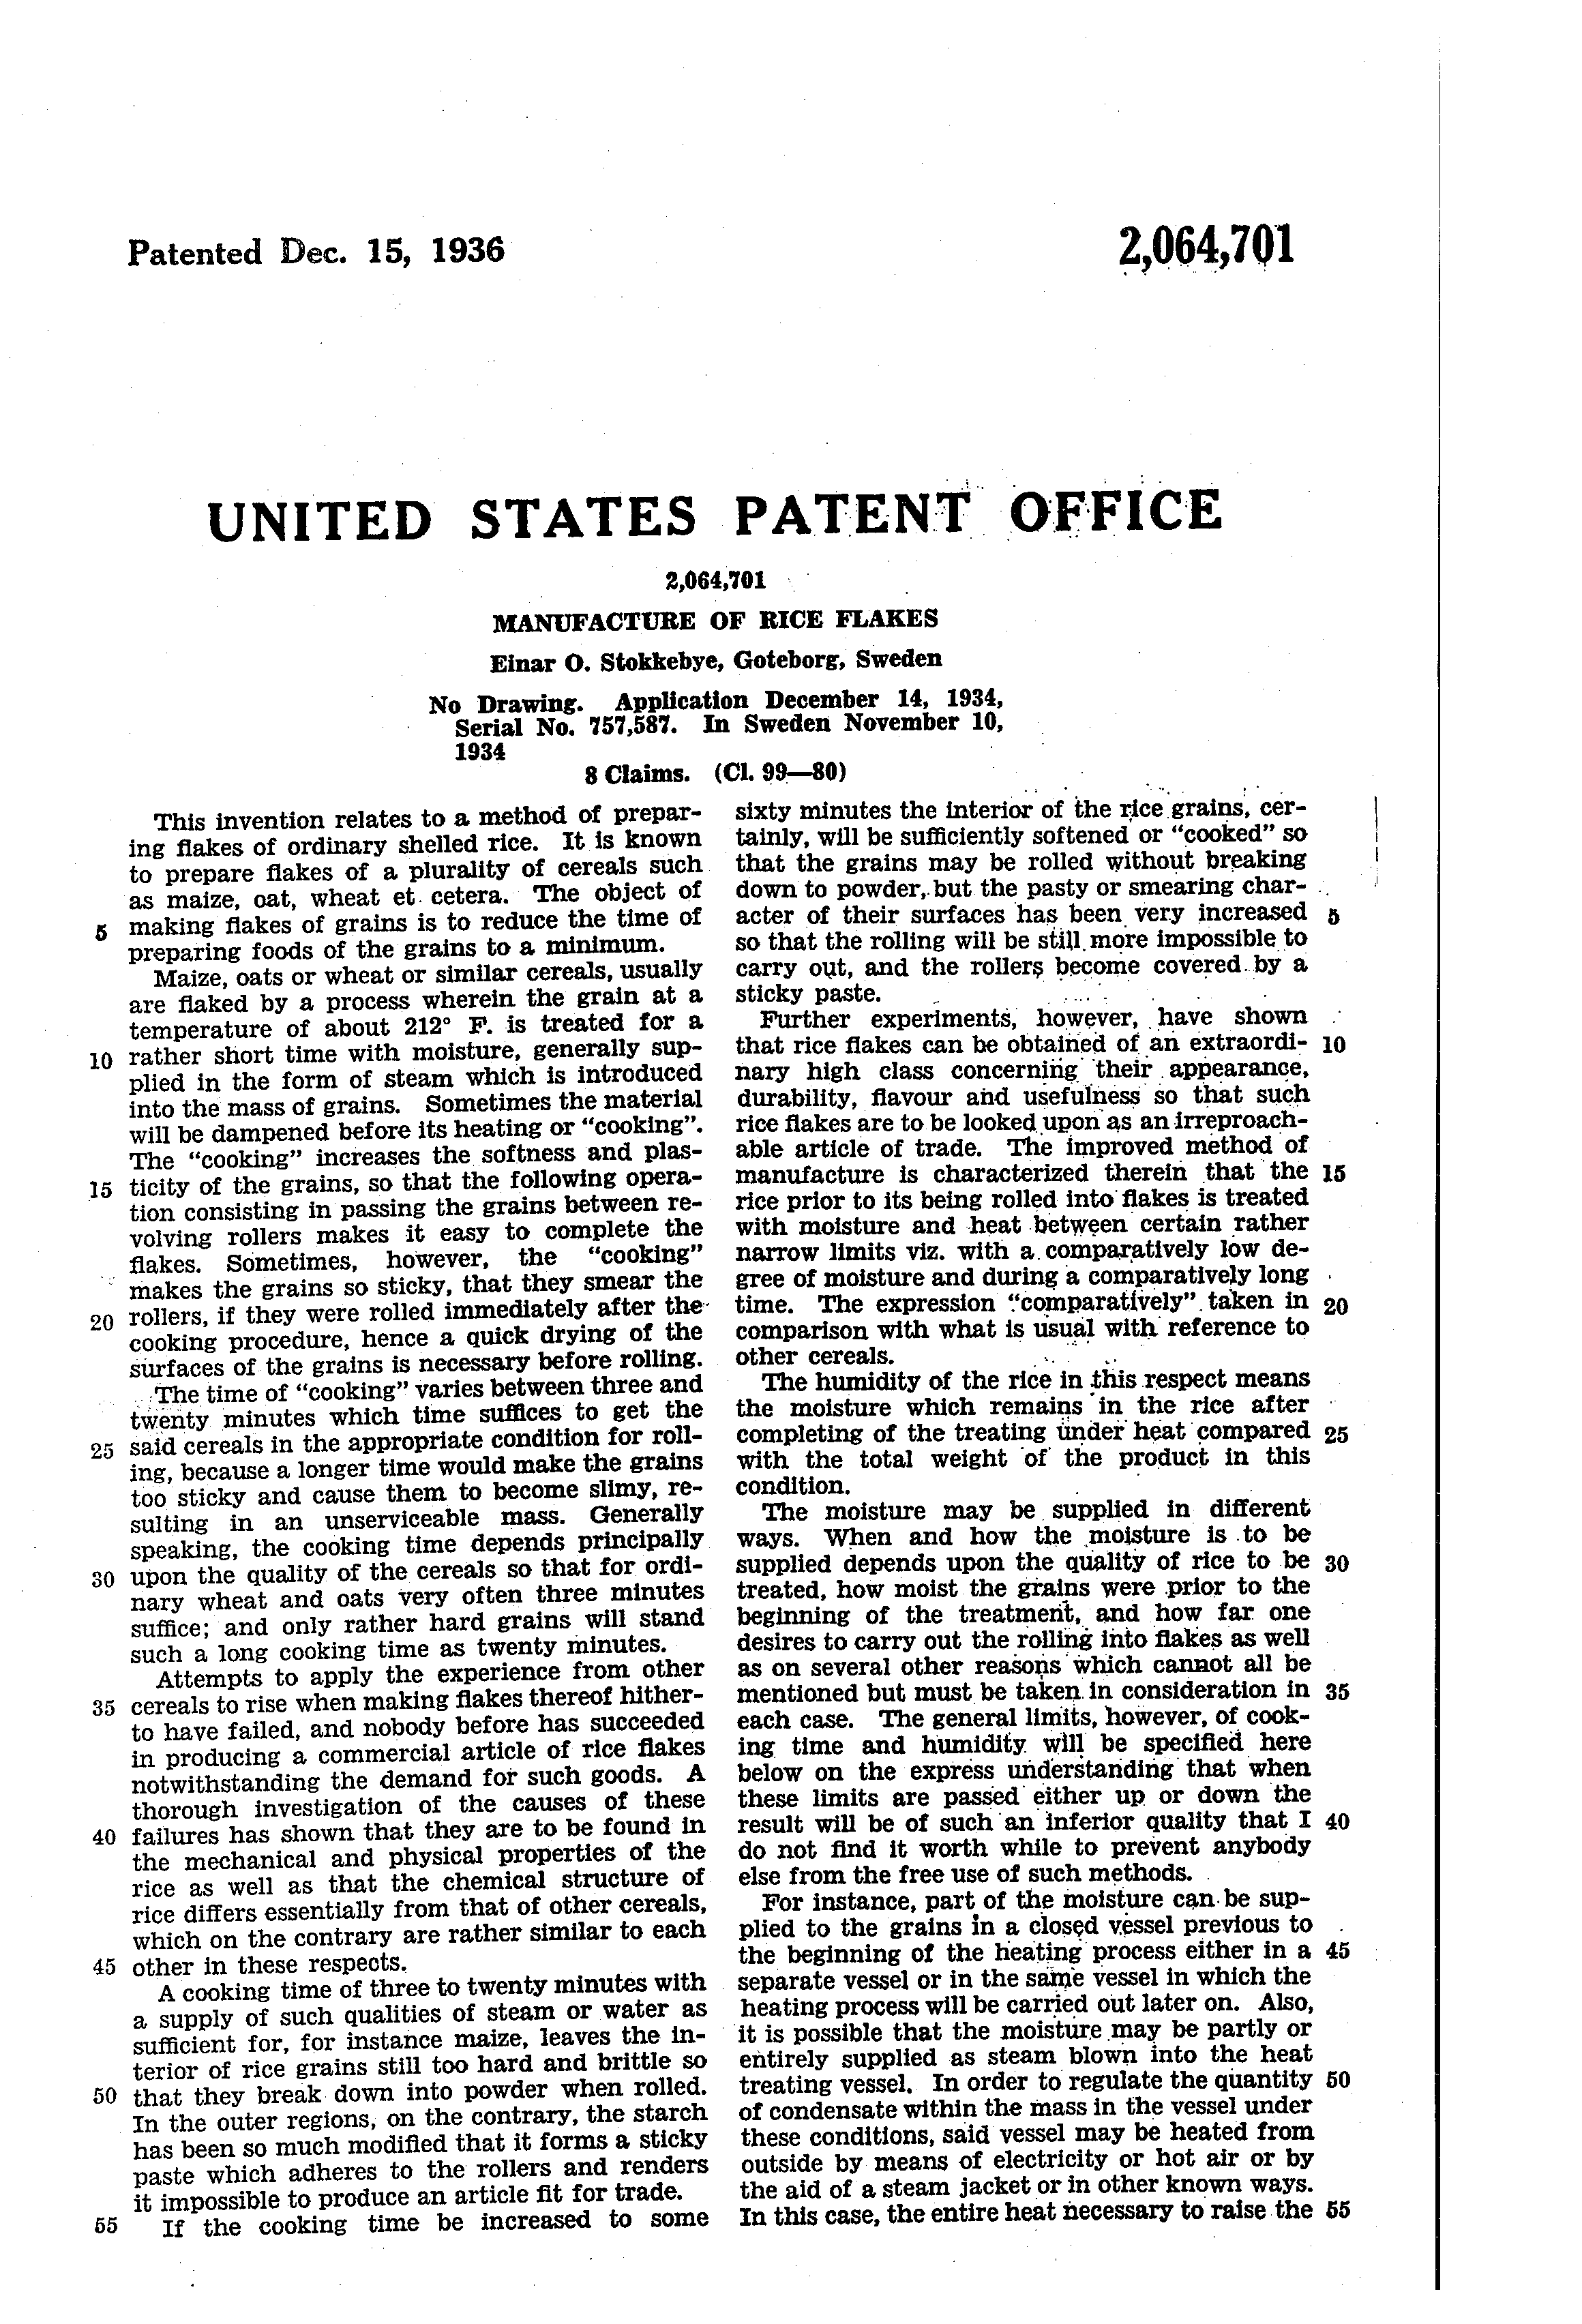 patent us manufacture of rice flakes patents patent drawing